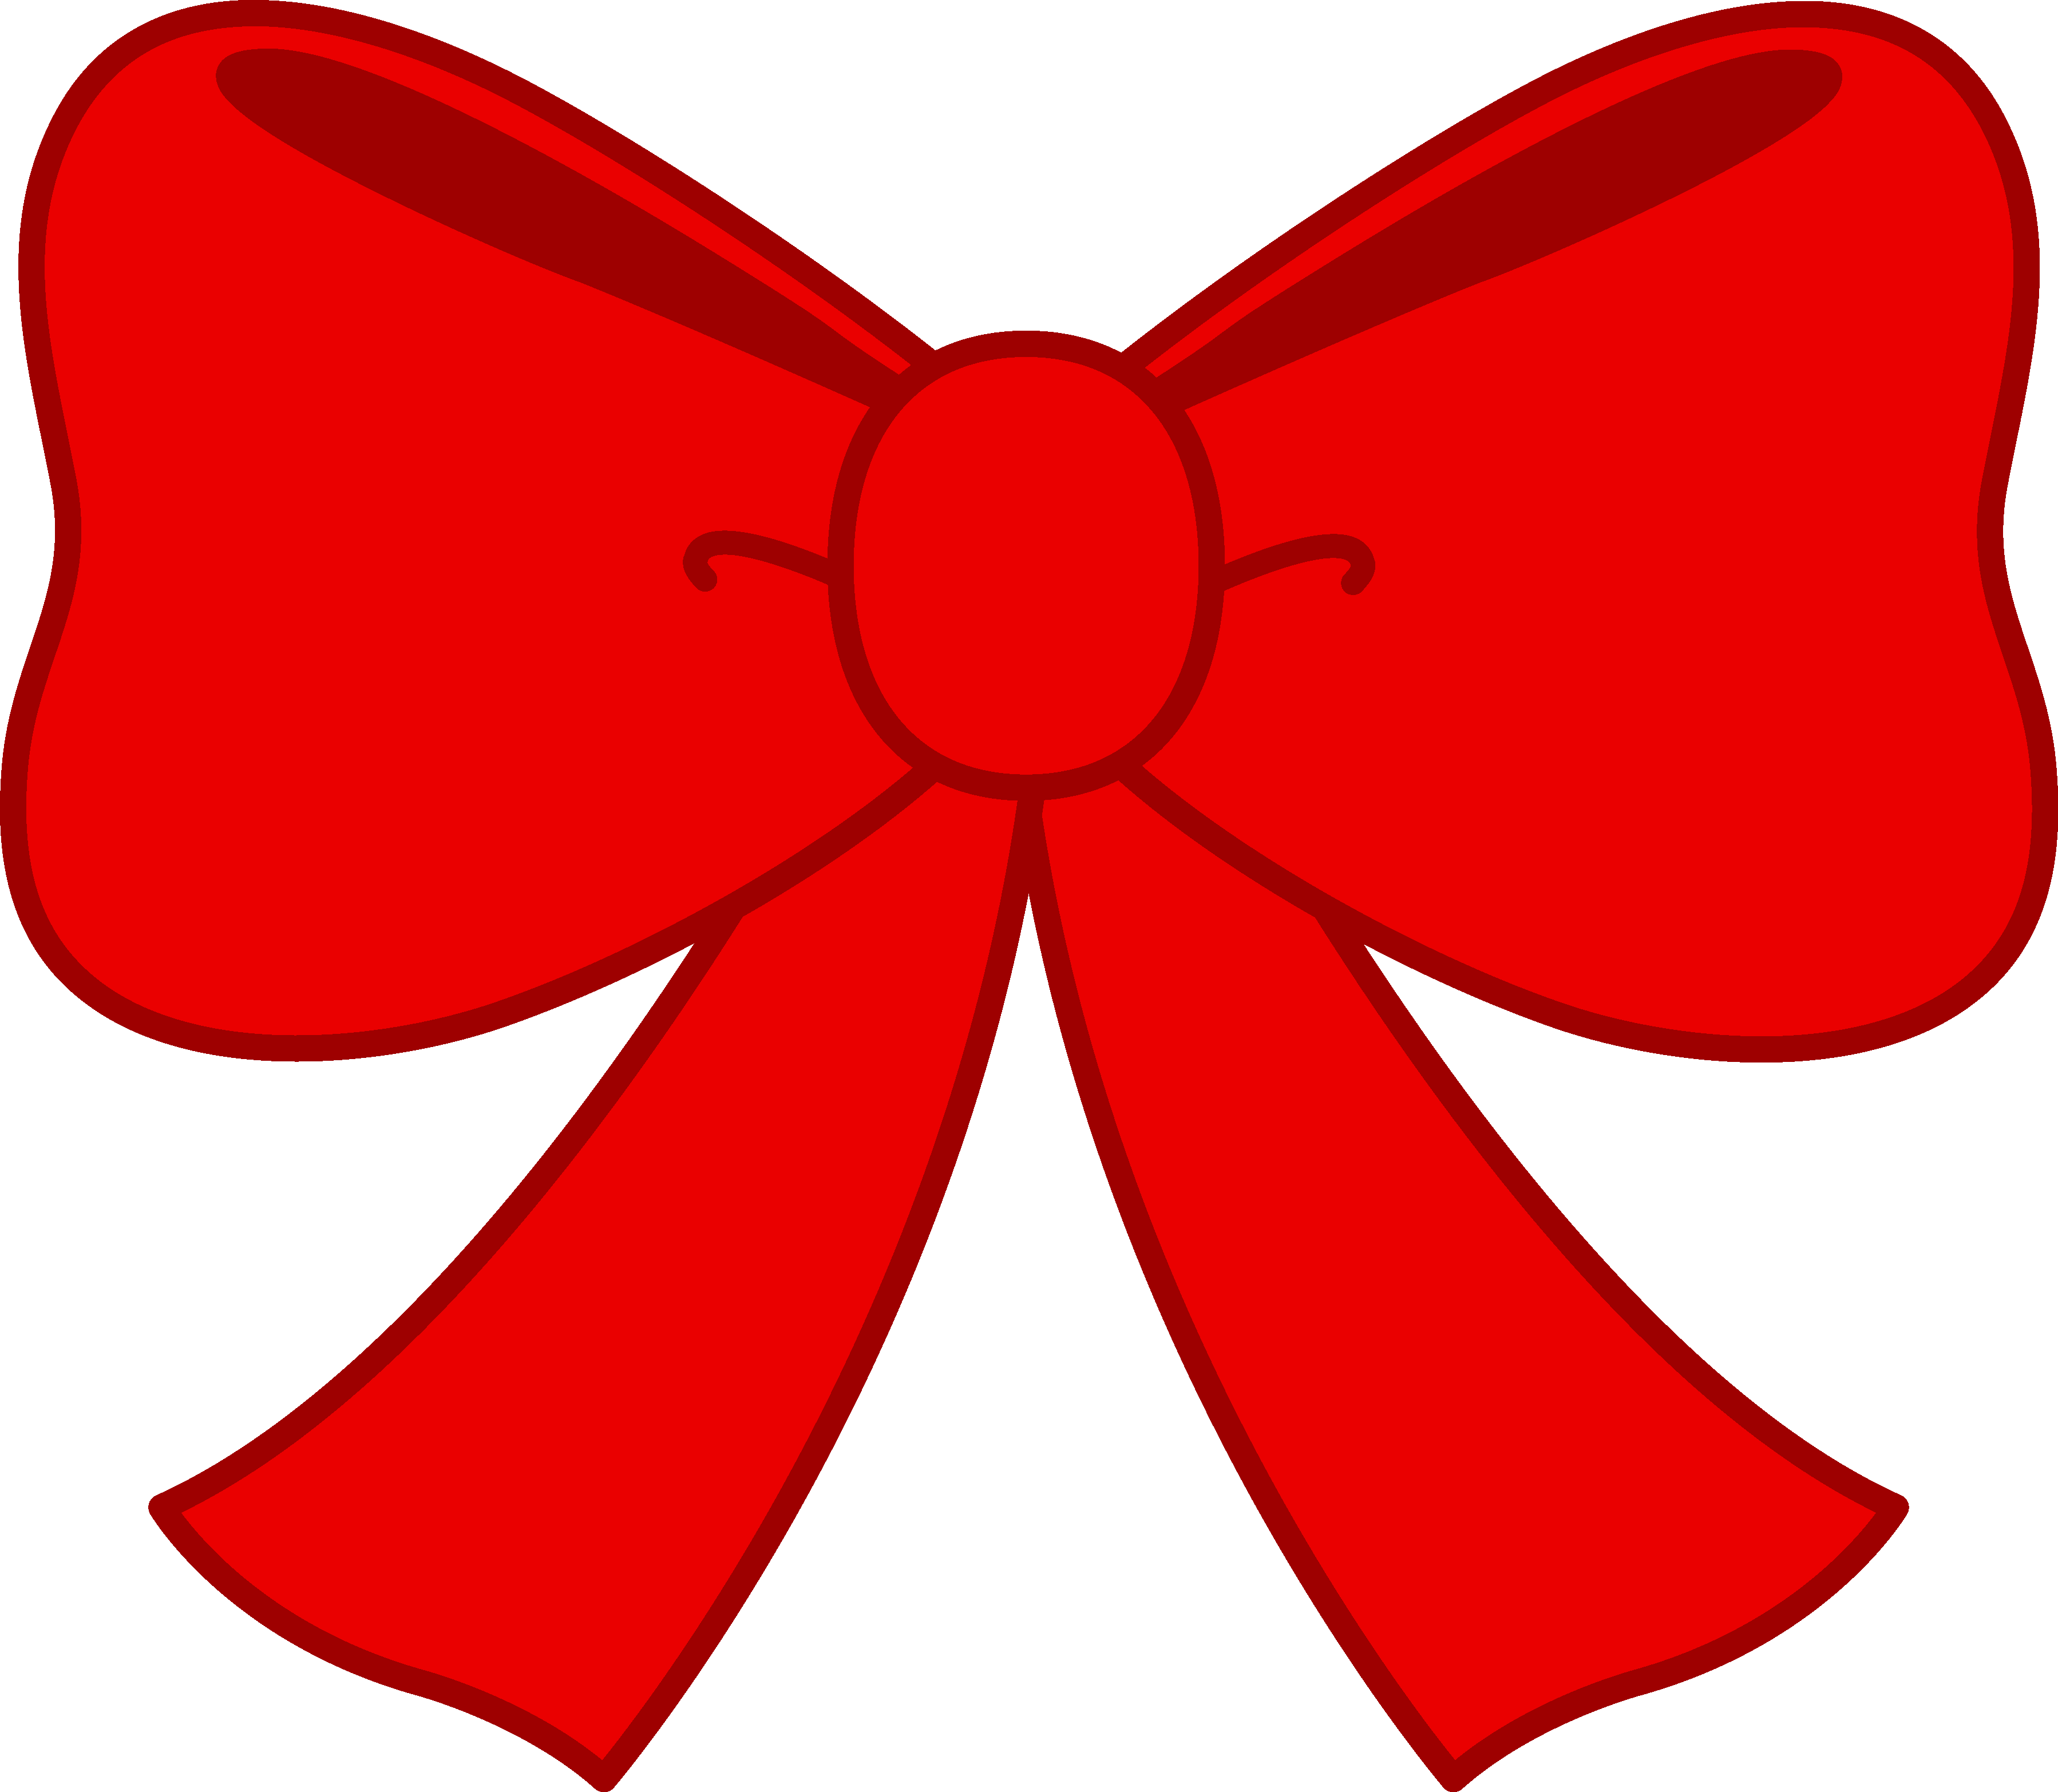 Free Red Bow Images, Download Free Clip Art, Free Clip Art.